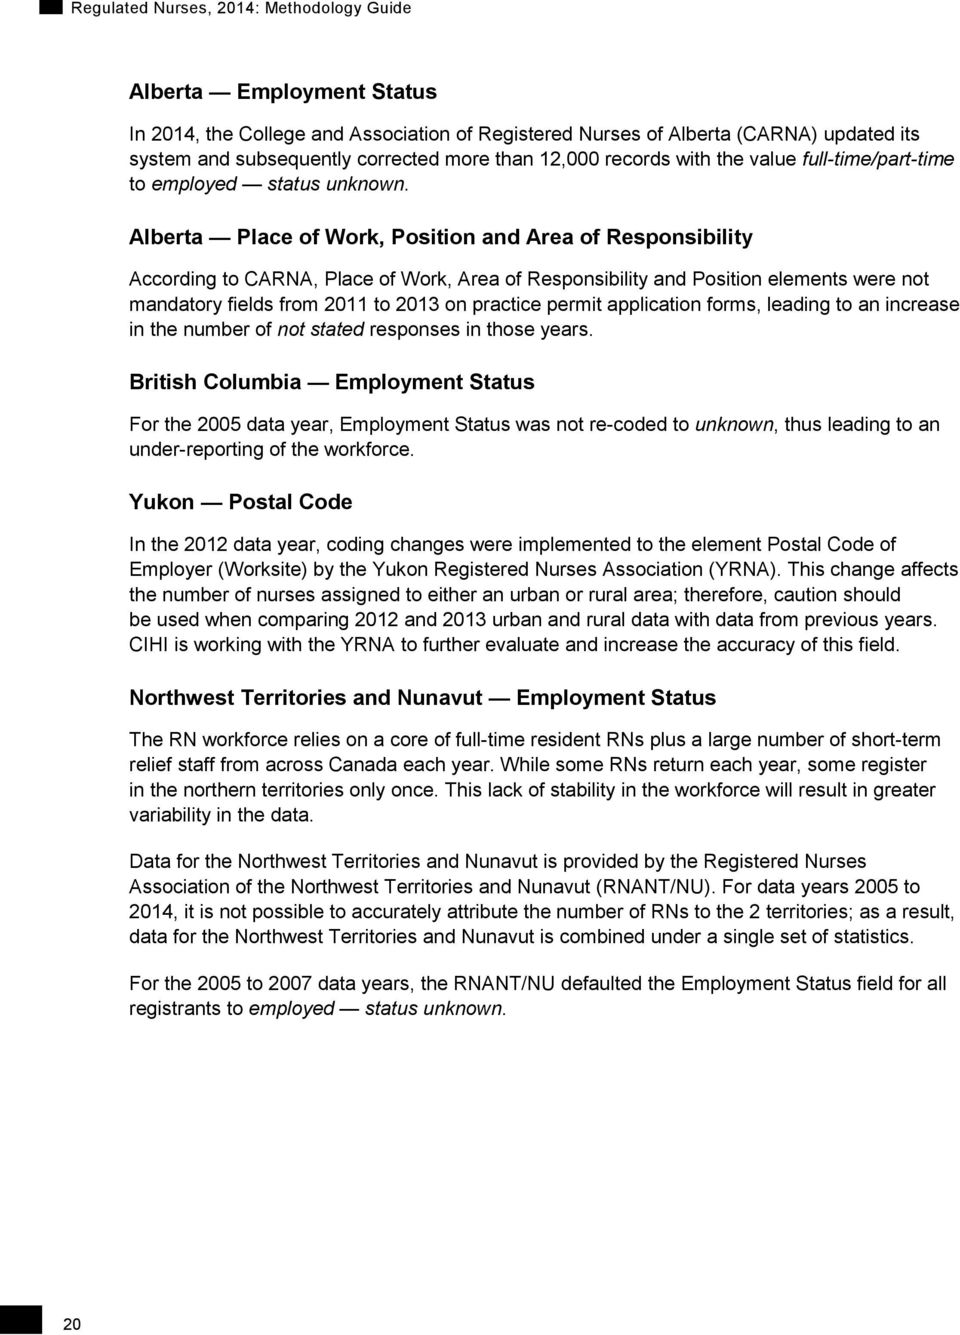 Alberta Place of Work, Position and Area of Responsibility According to CARNA, Place of Work, Area of Responsibility and Position elements were not mandatory fields from 2011 to 2013 on practice